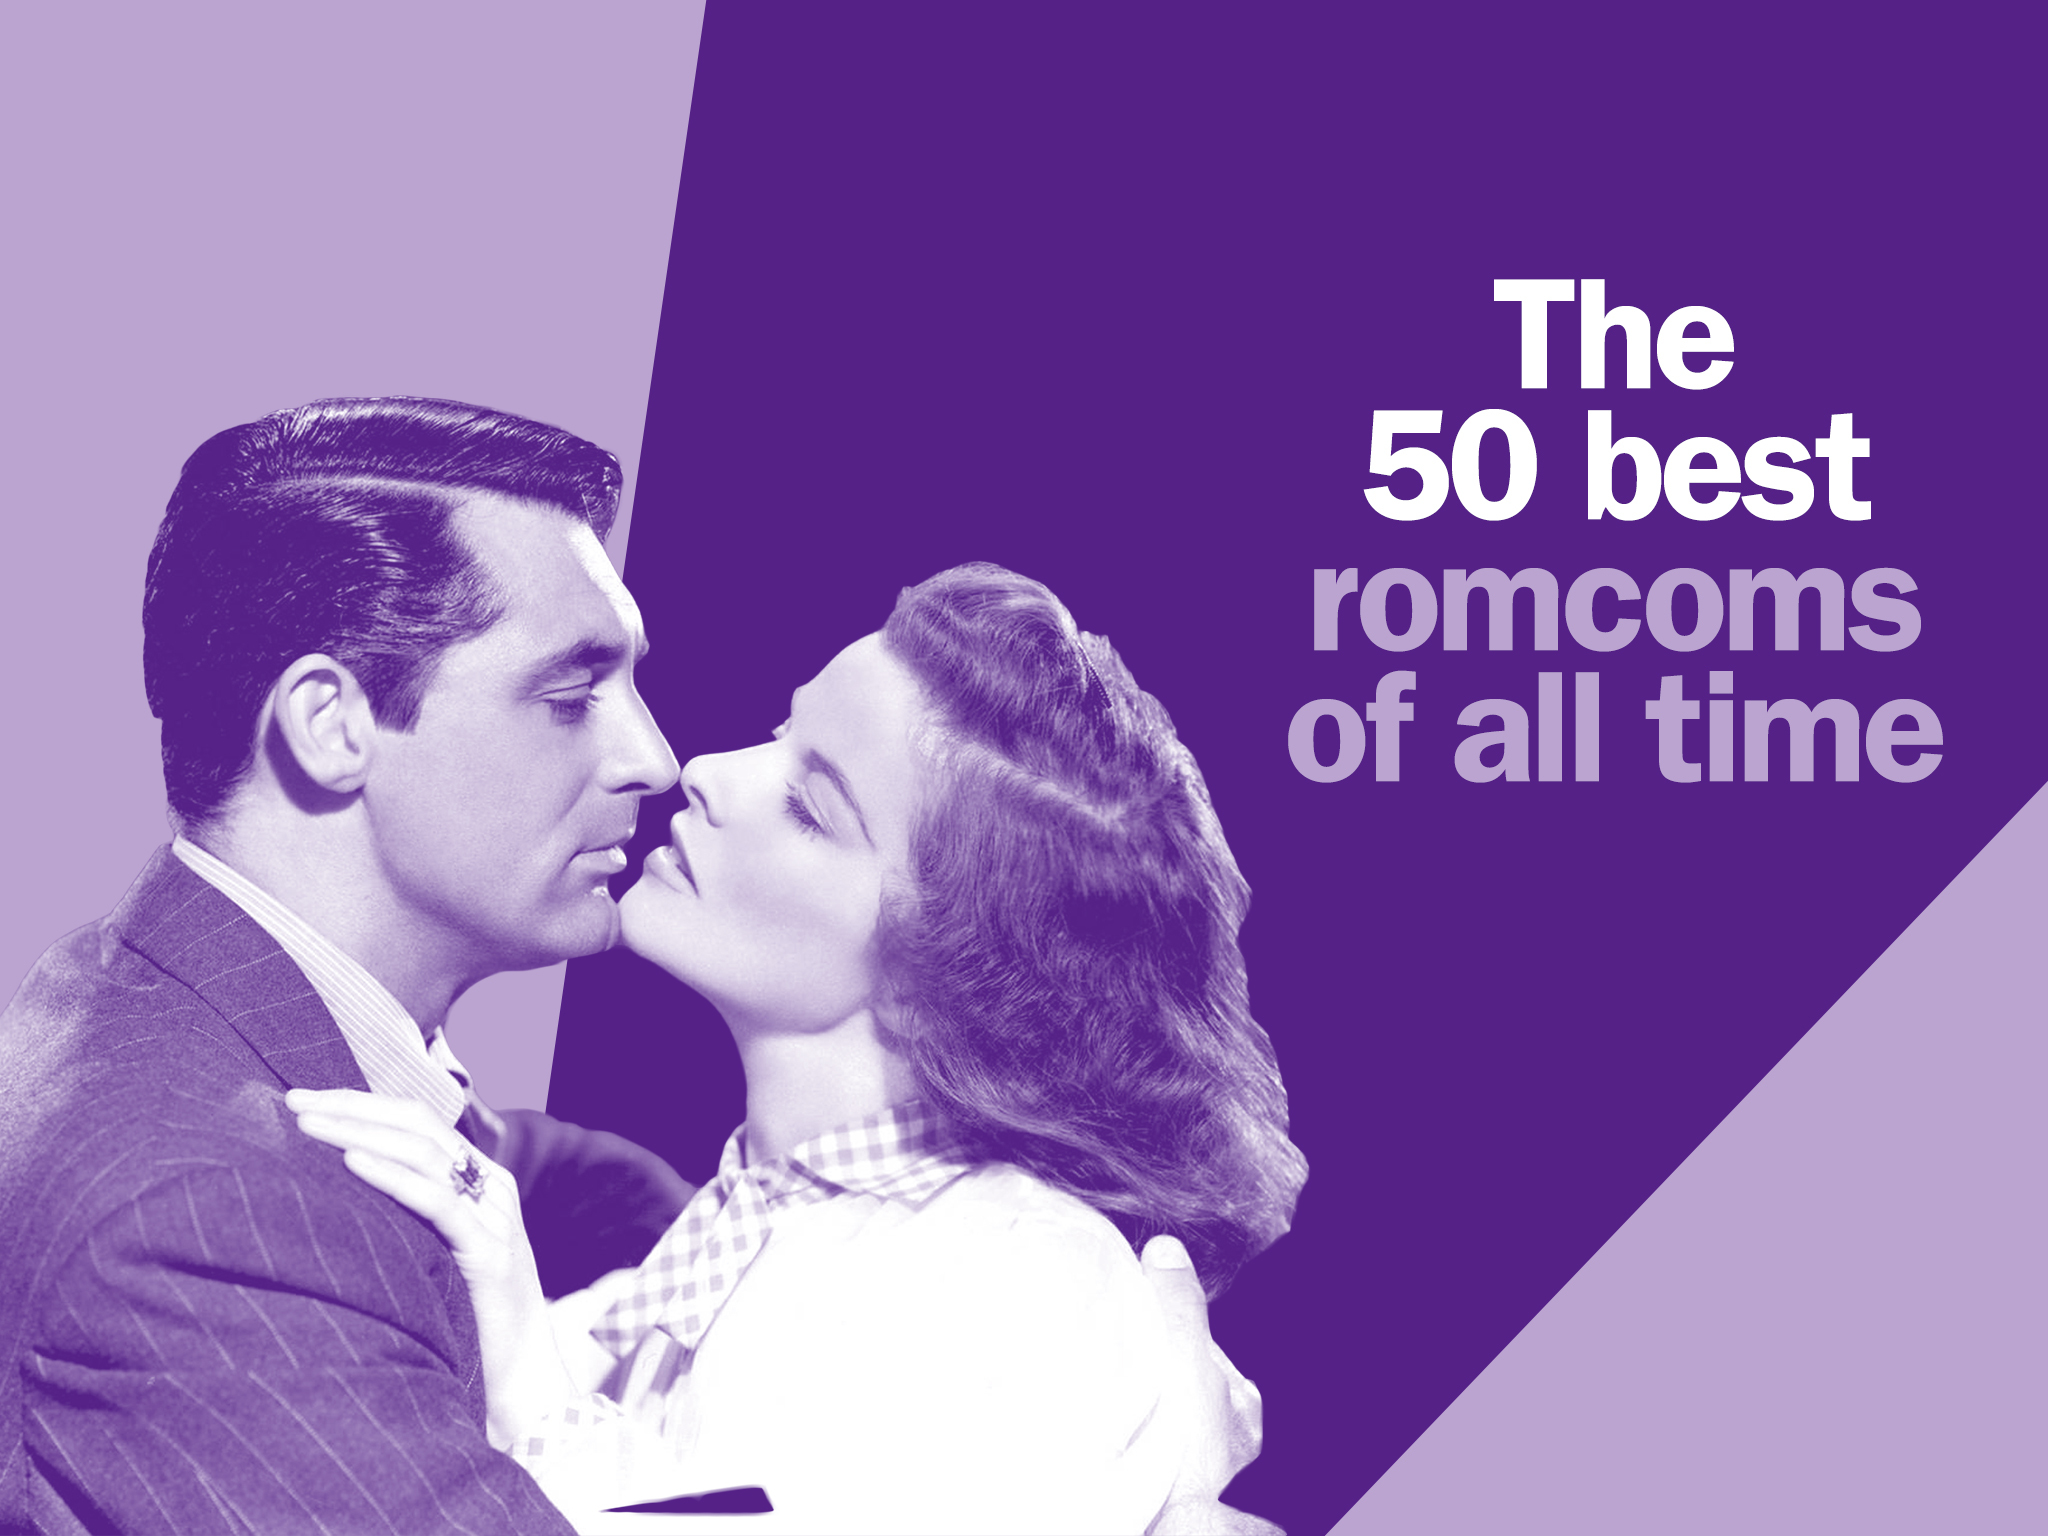 The 50 best romantic comedies